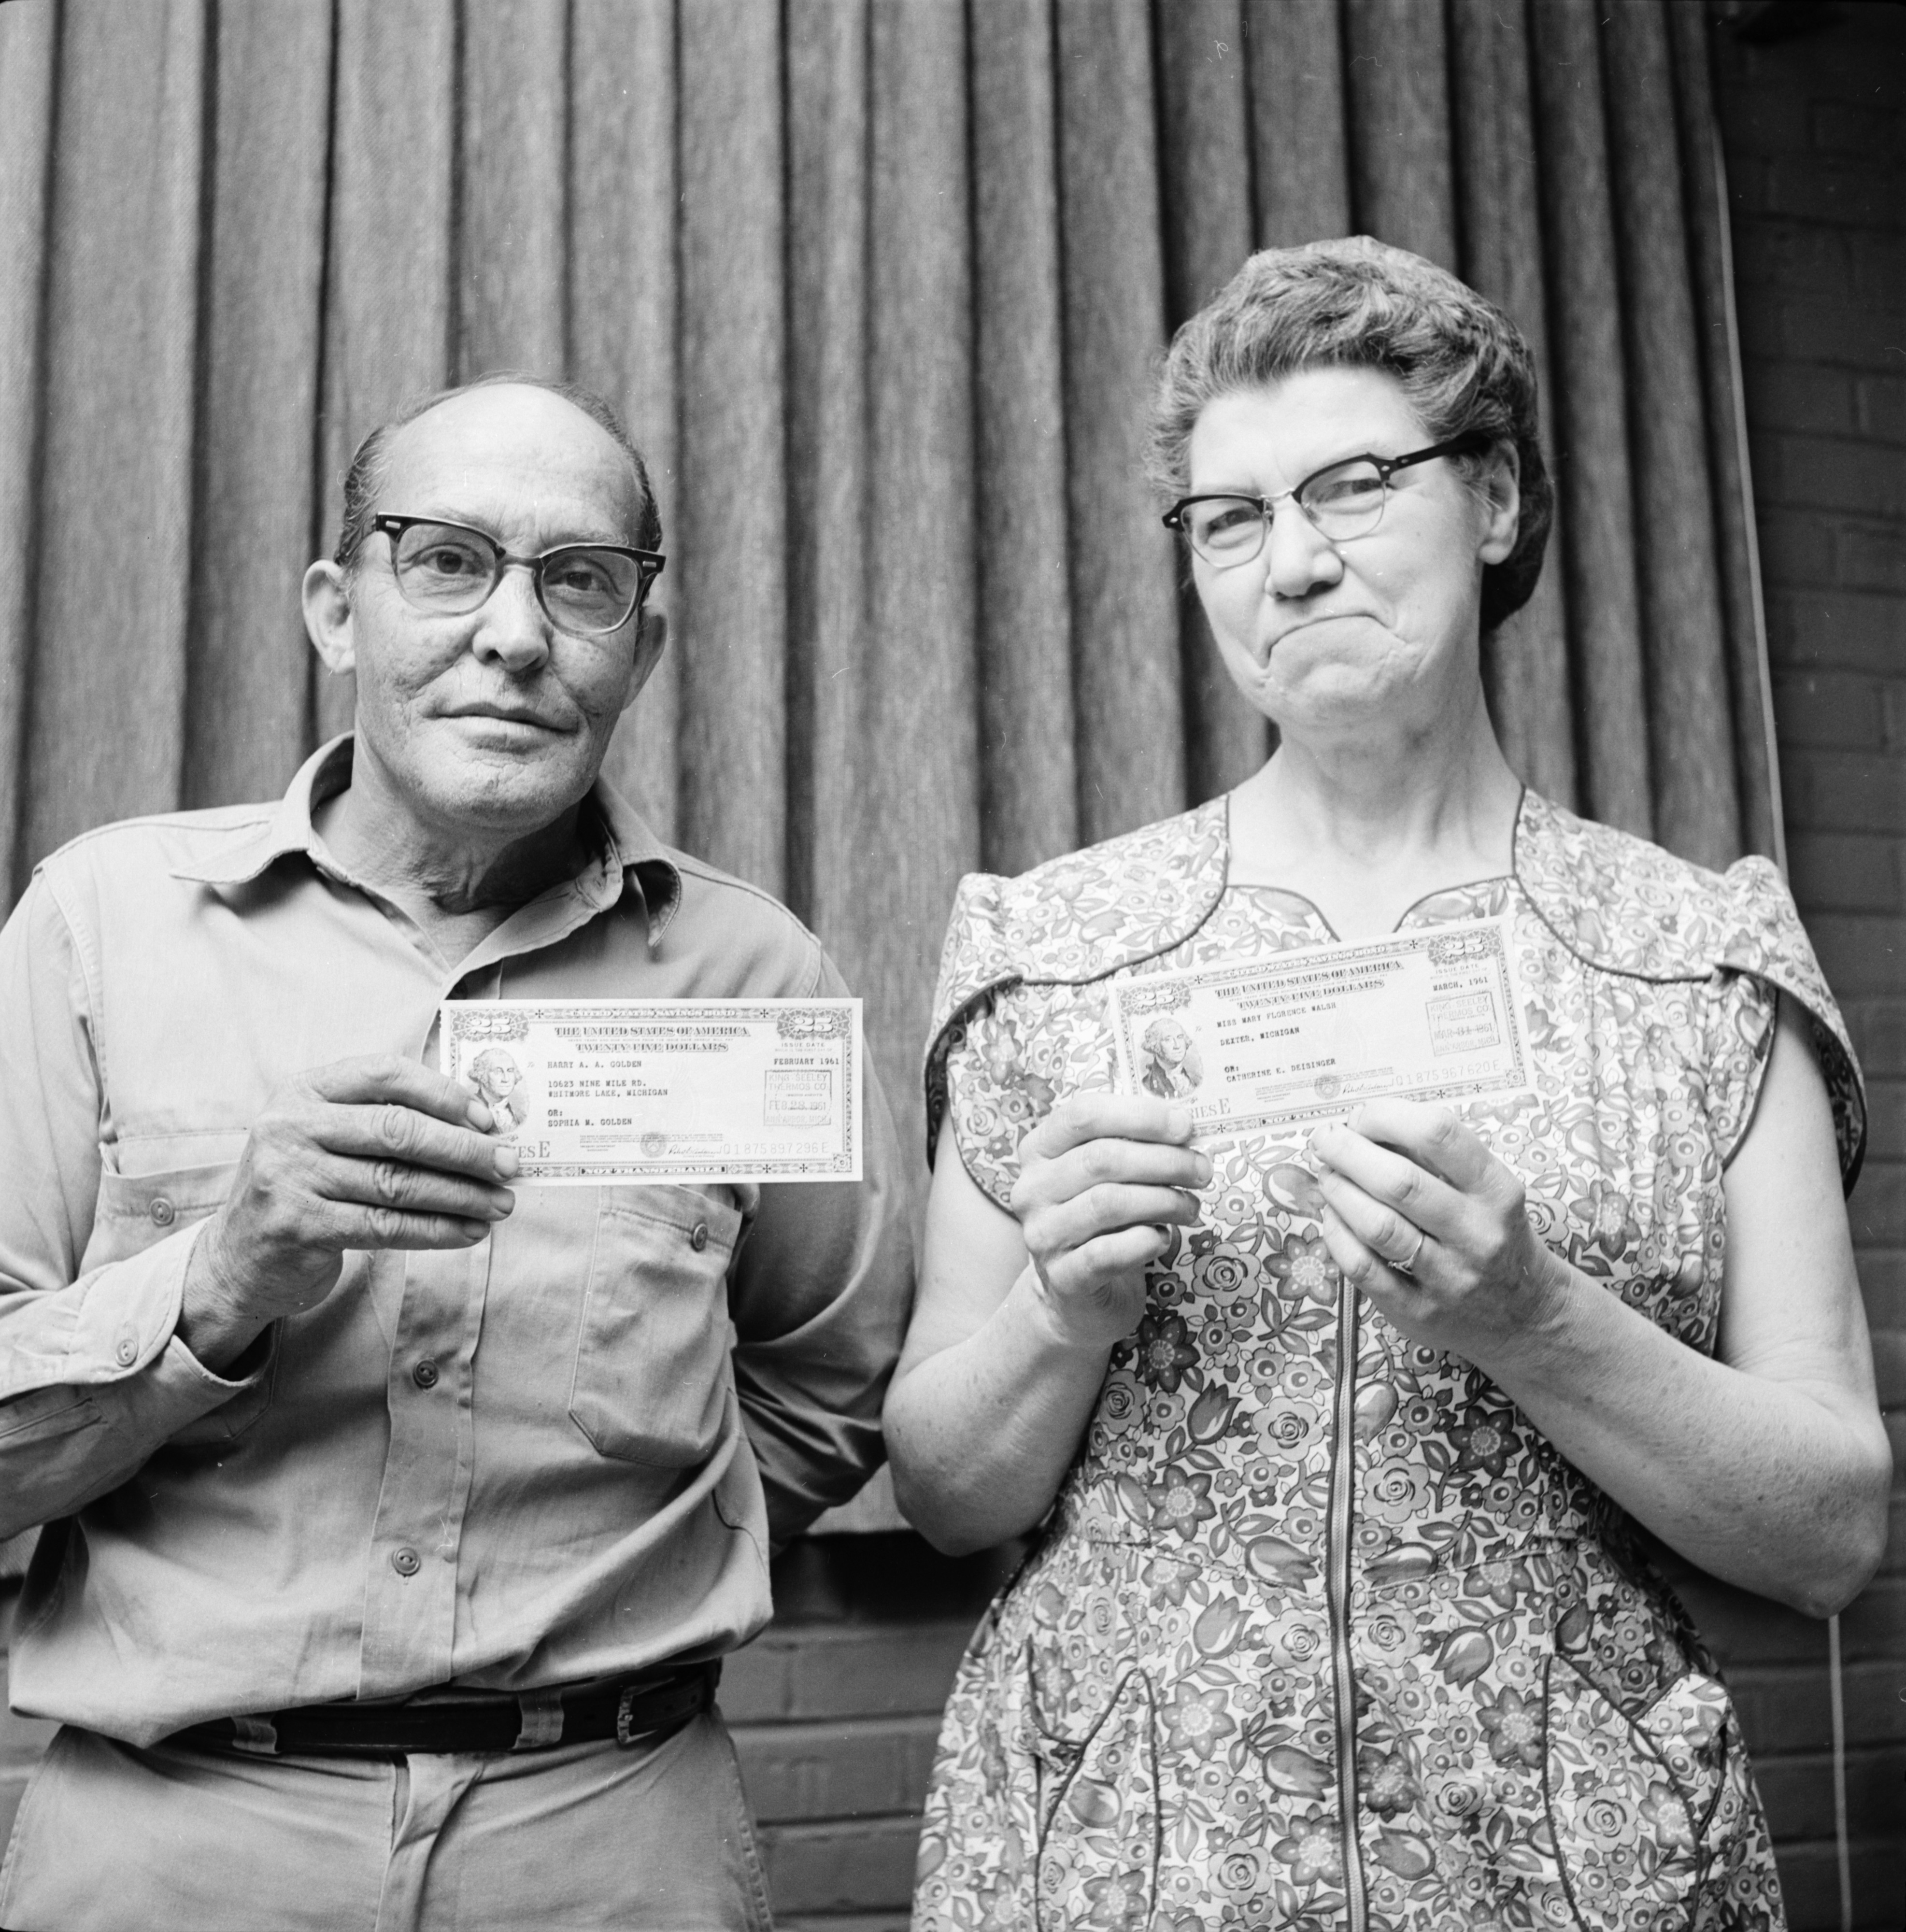 Harry Golden and Florence Walsh of King-Seeley Thermos Co. show U. S. Savings Bonds like those they've been purchasing every month since World War II, May 1961 image